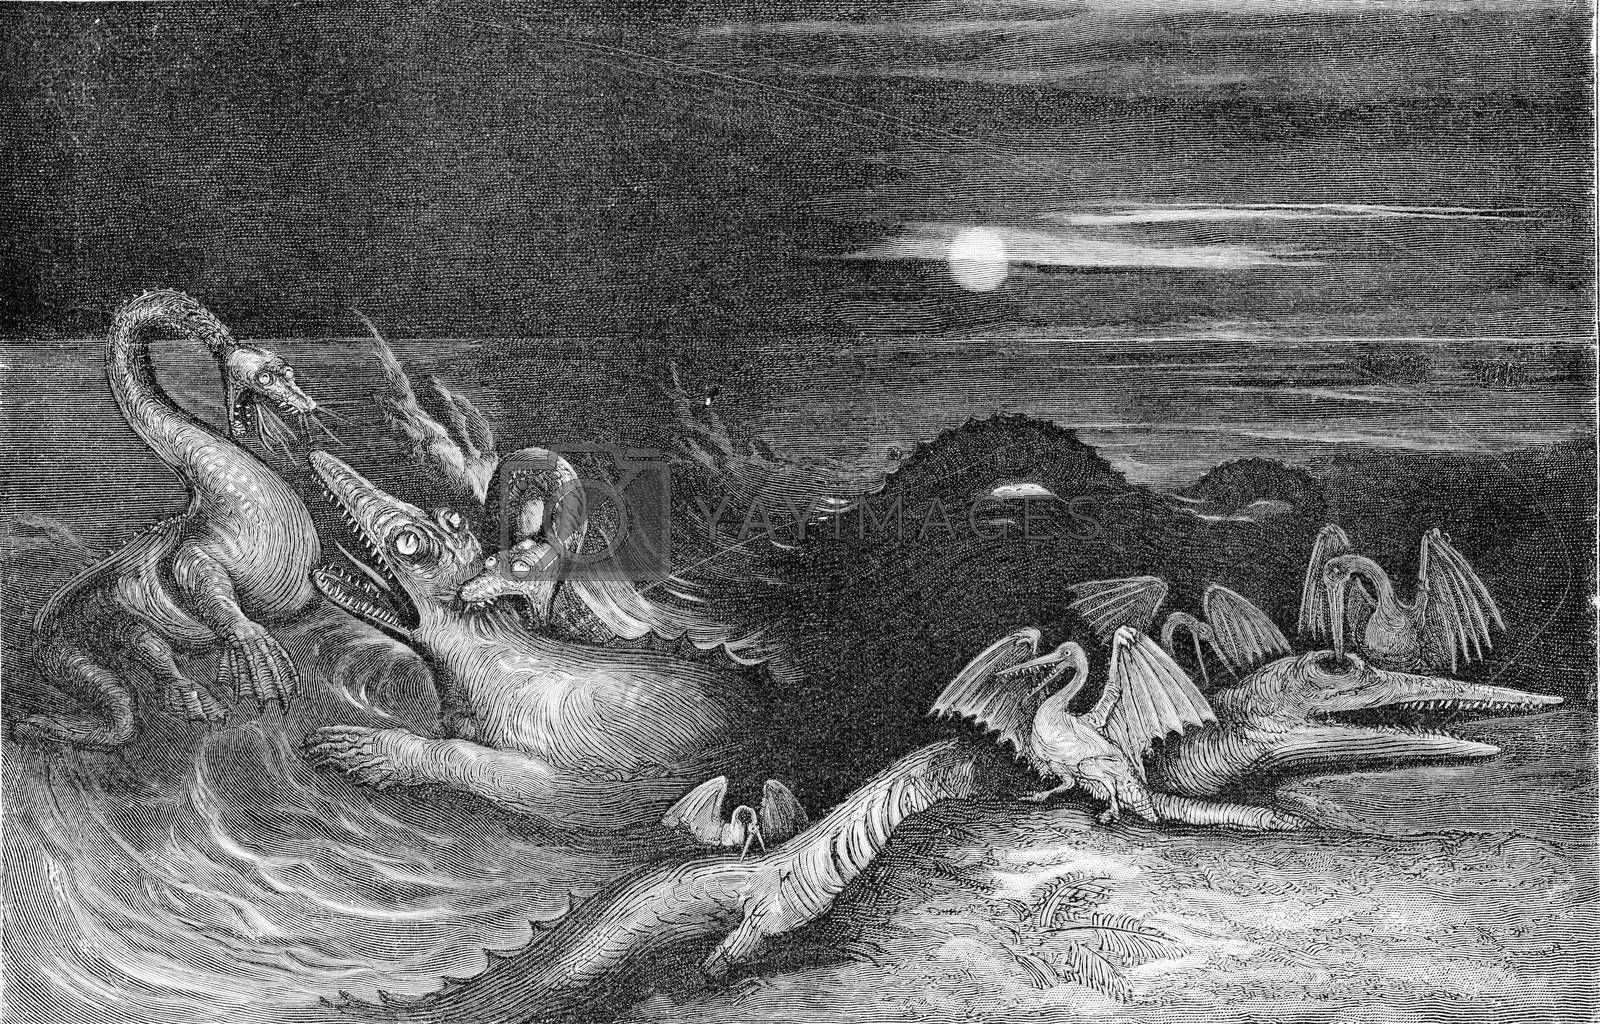 Combat of dragons in the Jurassic era of the secondary era, vintage engraved illustration. From the Universe and Humanity, 1910.